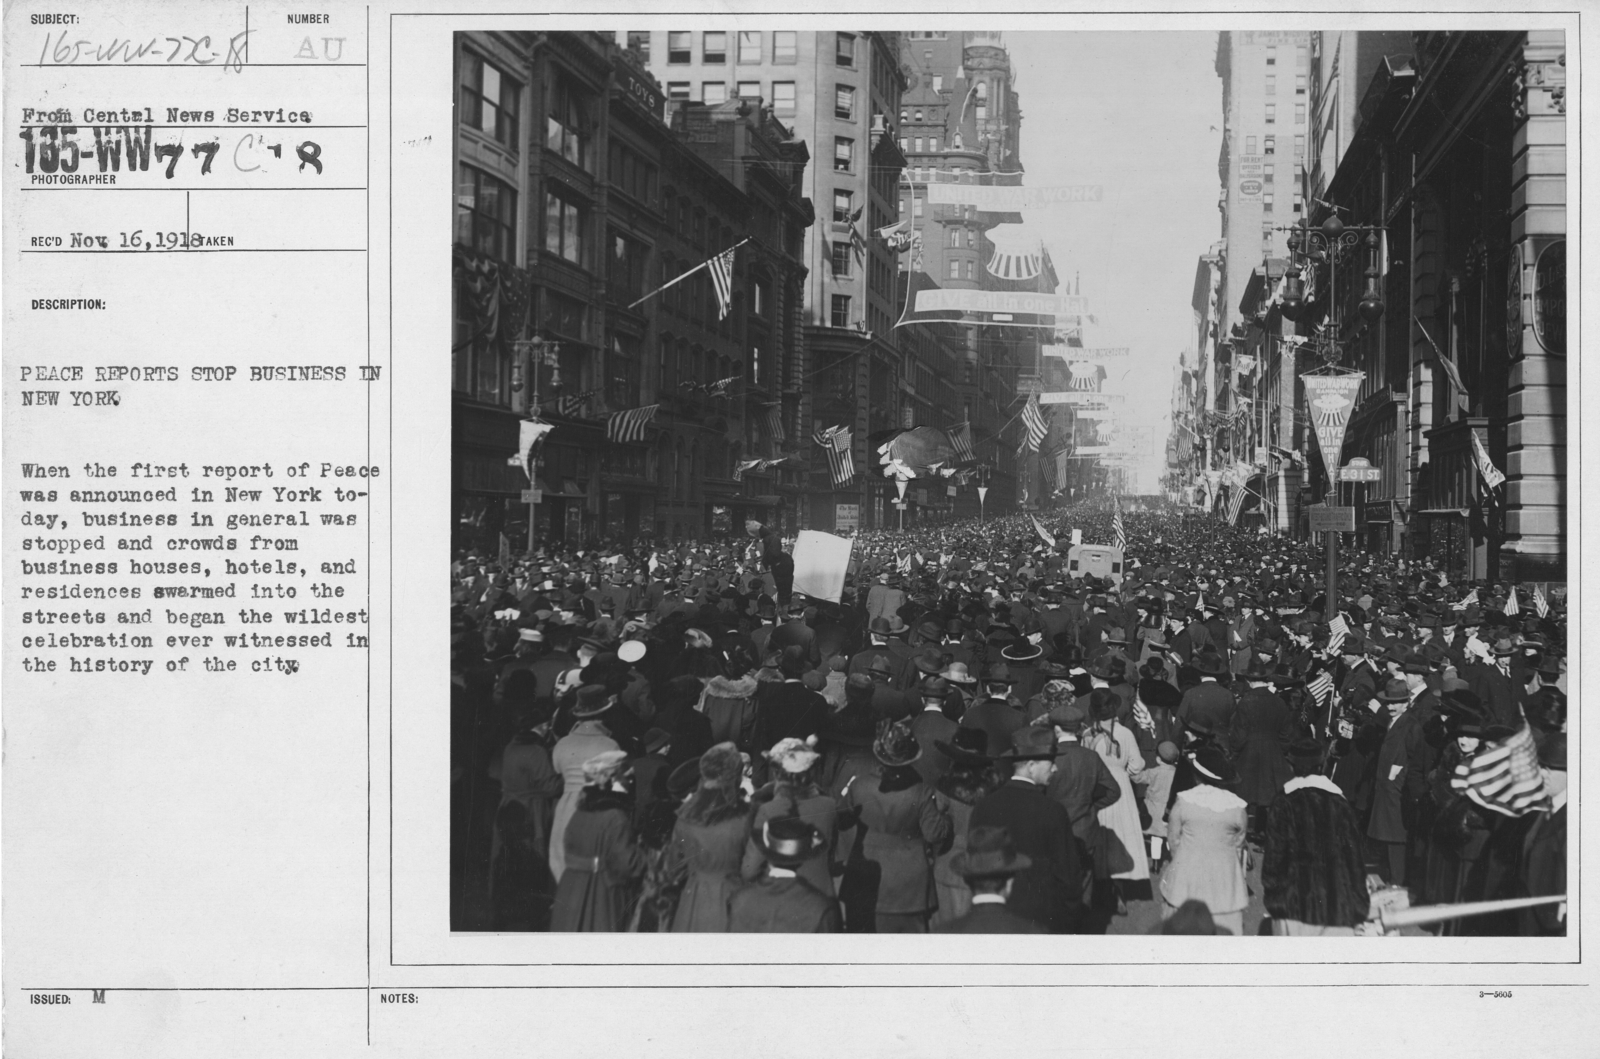 Ceremonies - New York City - Peace reports stop business in New York. When the first report of Peace was announced in New York today, business in general was stopped and crowds from business houses, hotels, and residences swarmed into the streets and began the wildest celebration ever witnessed in this history of the city